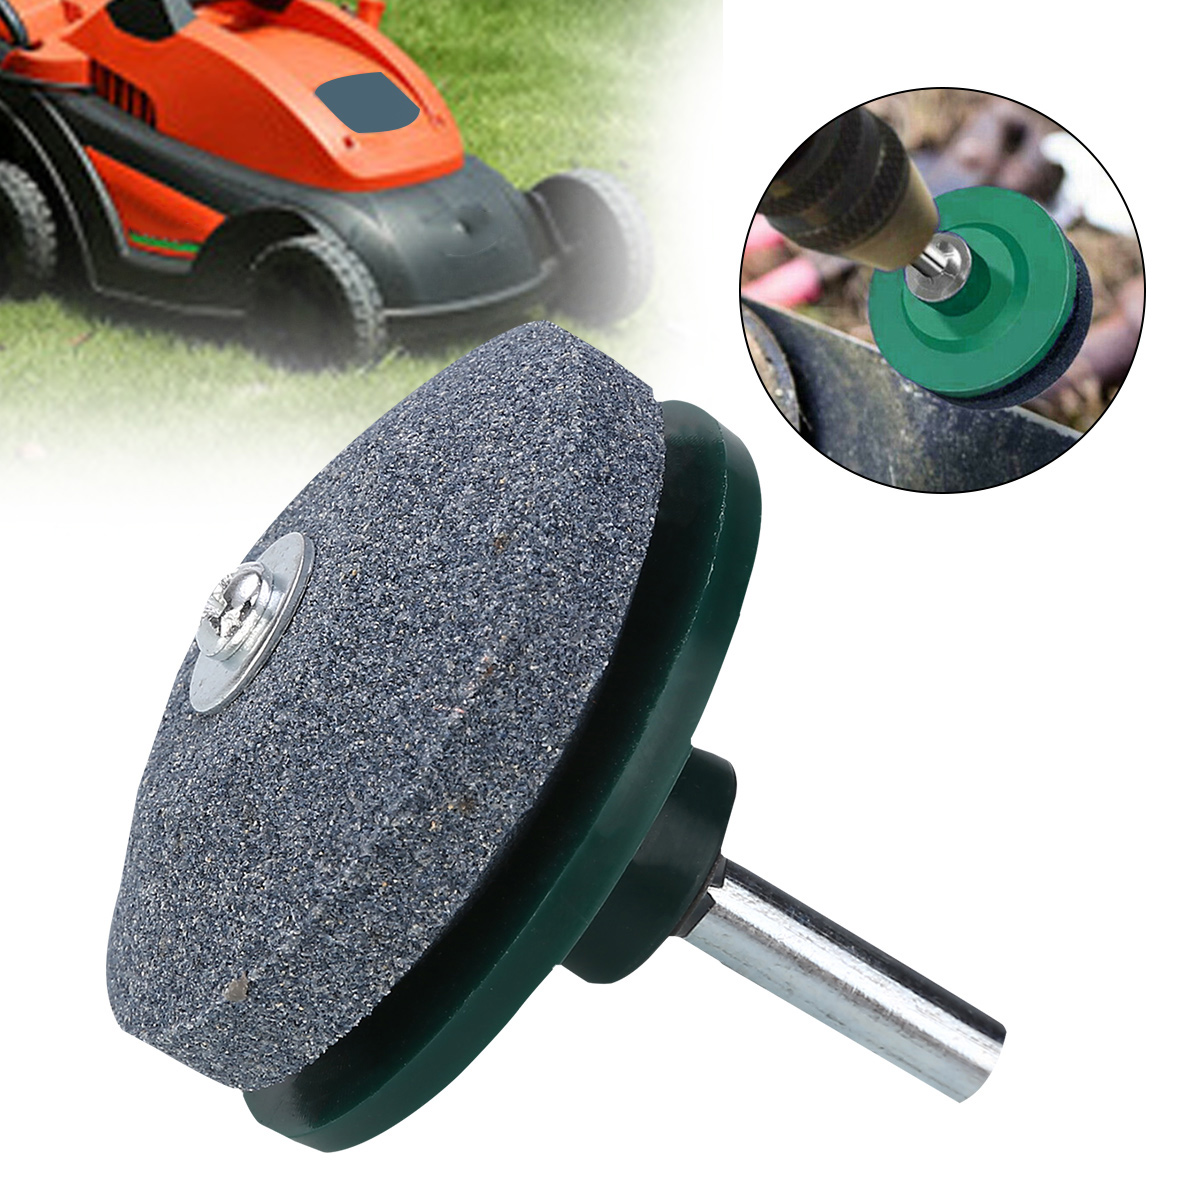 Green Lawn Mower Sharpener 50mm Drill Mounted Blades Rotary Tool